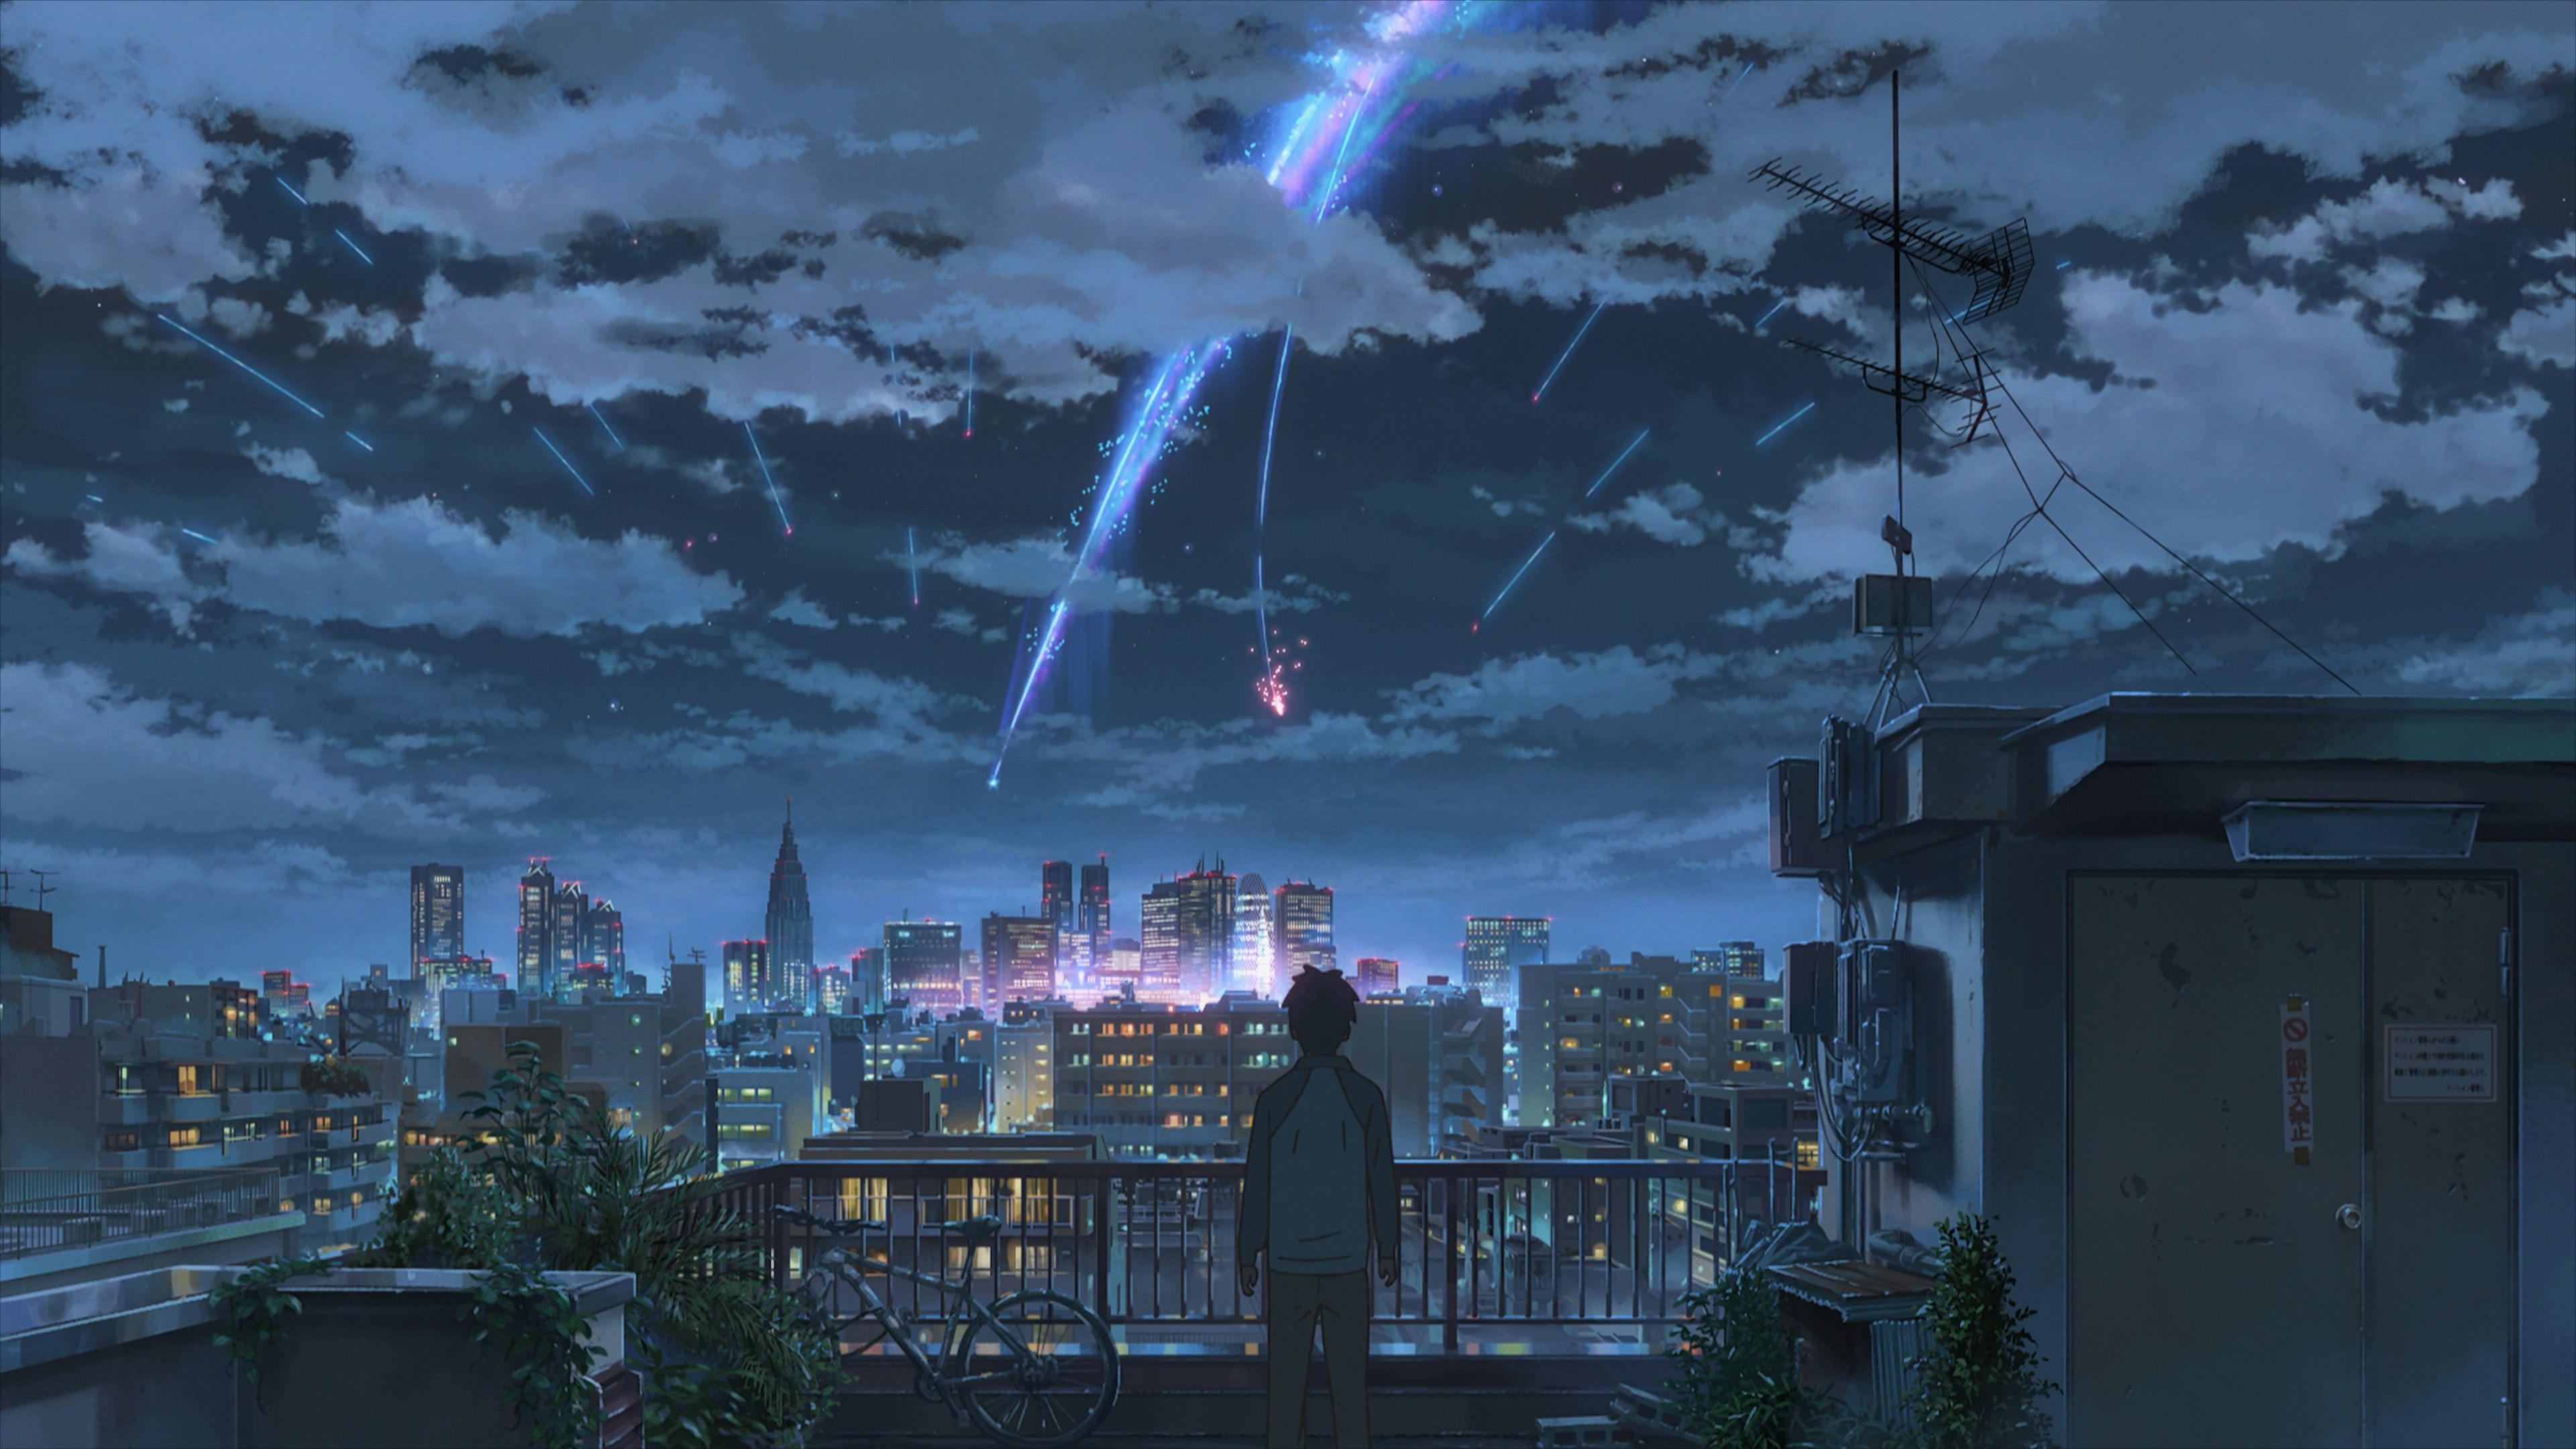 Your Name 4k Wallpaper Galore Kimi No Na Wa Wallpaper Your Name Anime Anime Scenery